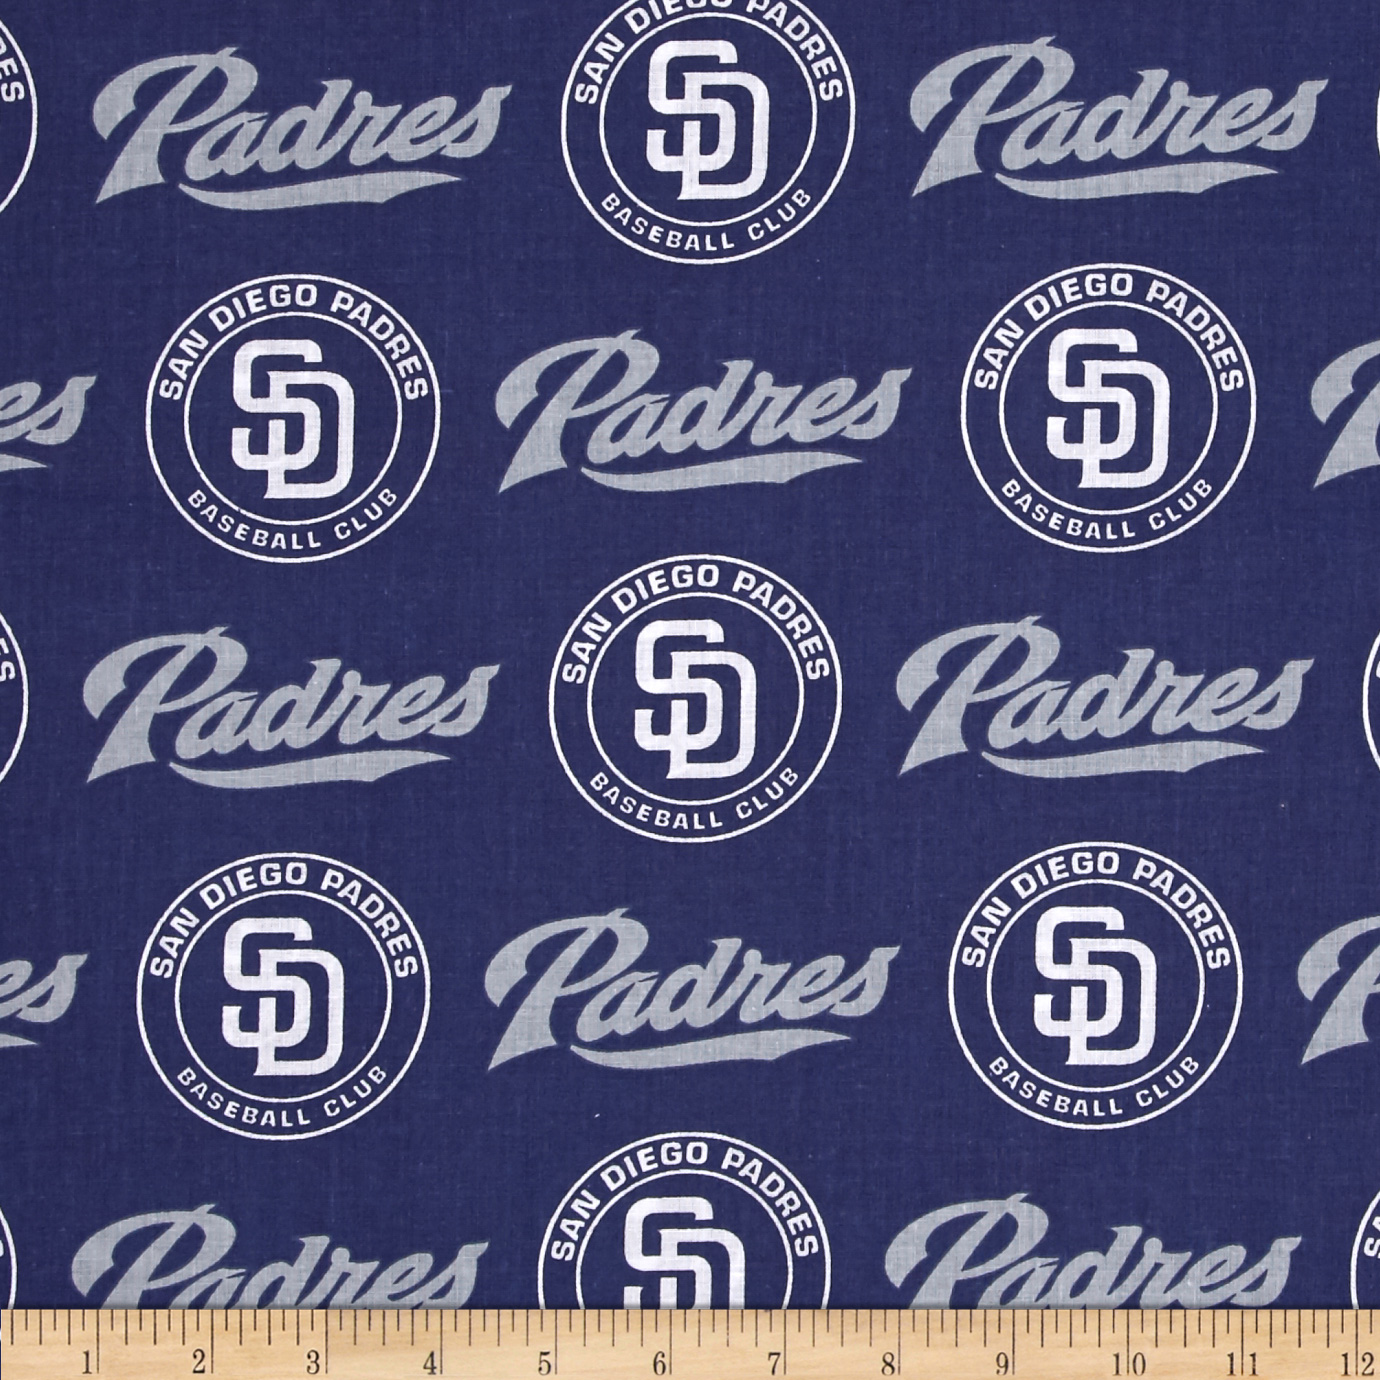 MLB Cotton Broadcloth San Diego Padres Blue/Grey Fabric by Fabric Traditions in USA